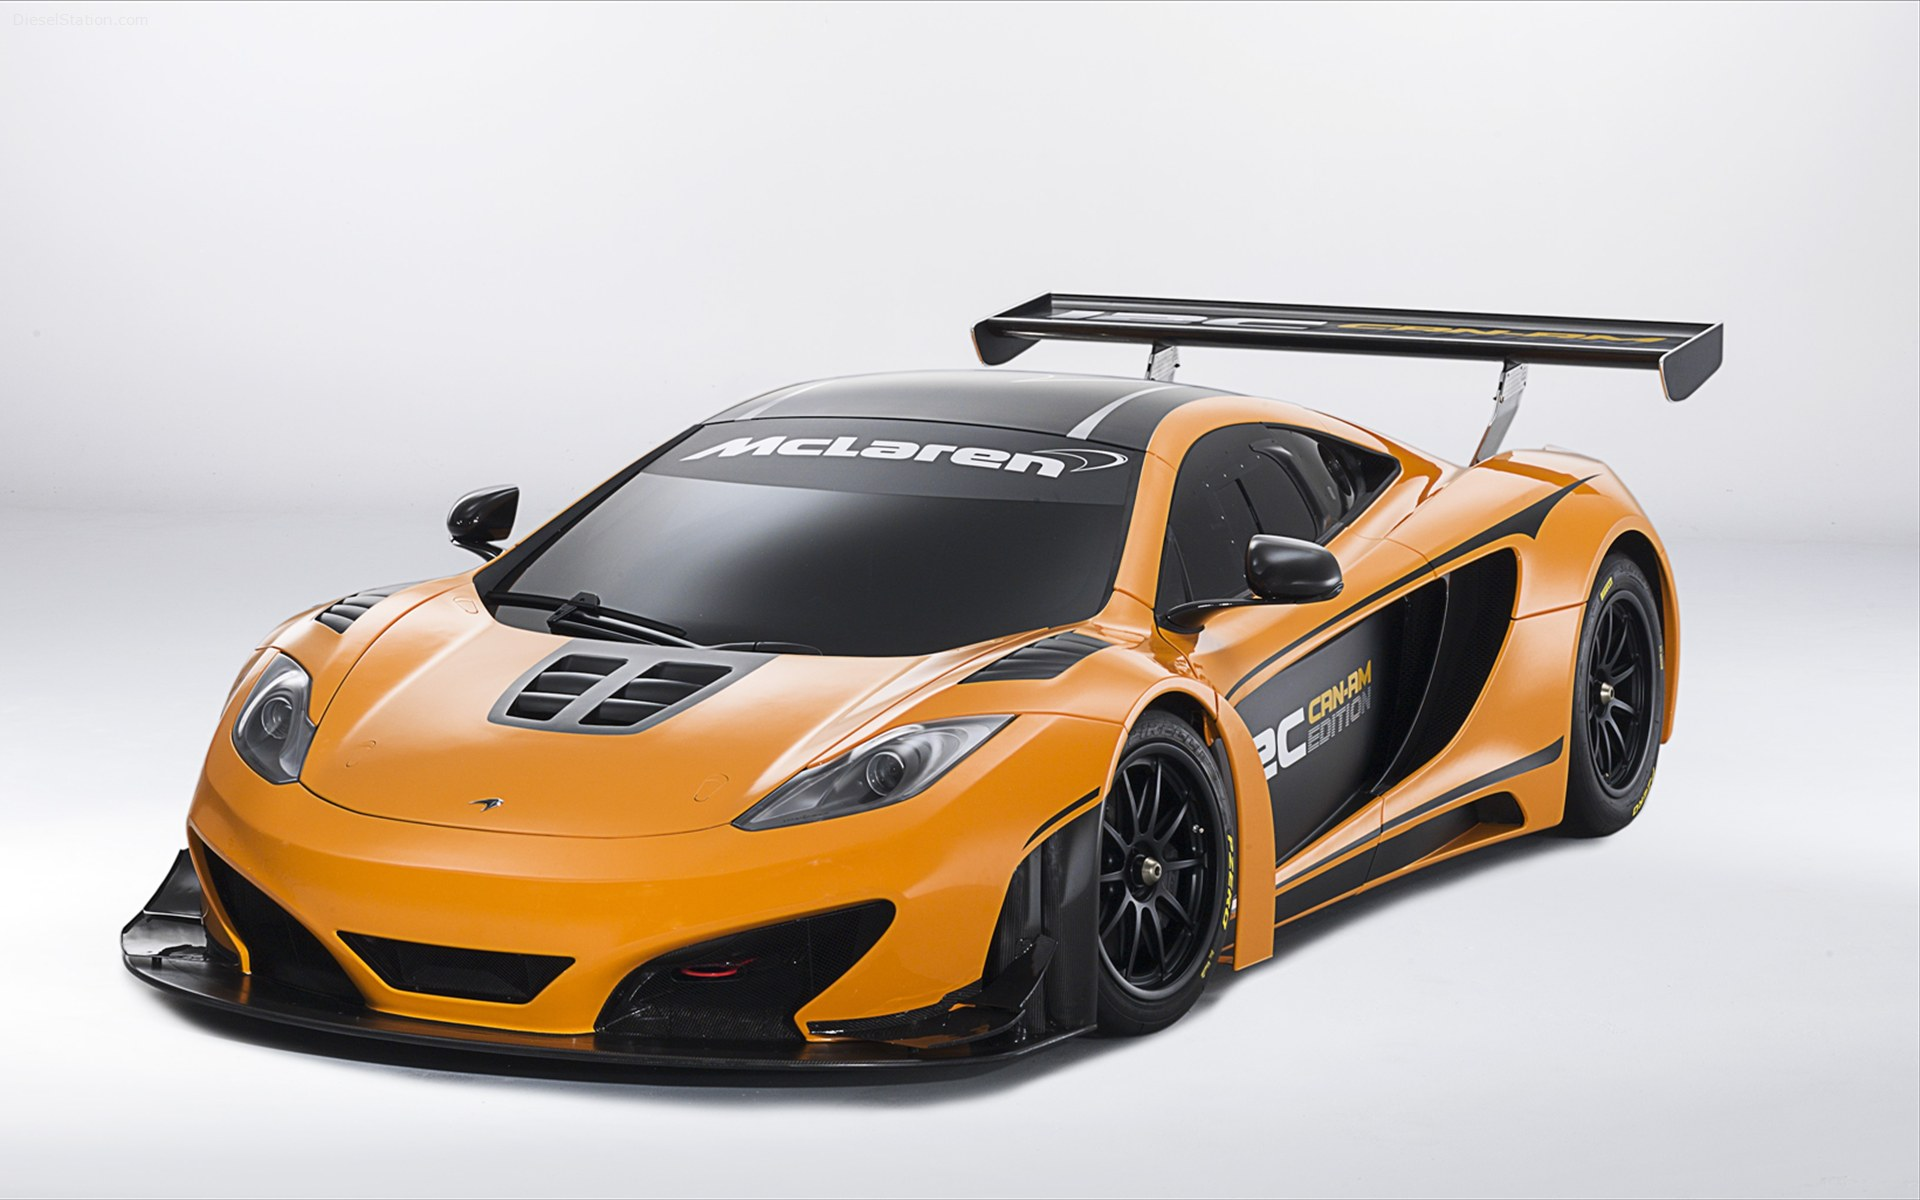 mclaren 12c racing concept wallpaper hd car wallpapers. Black Bedroom Furniture Sets. Home Design Ideas